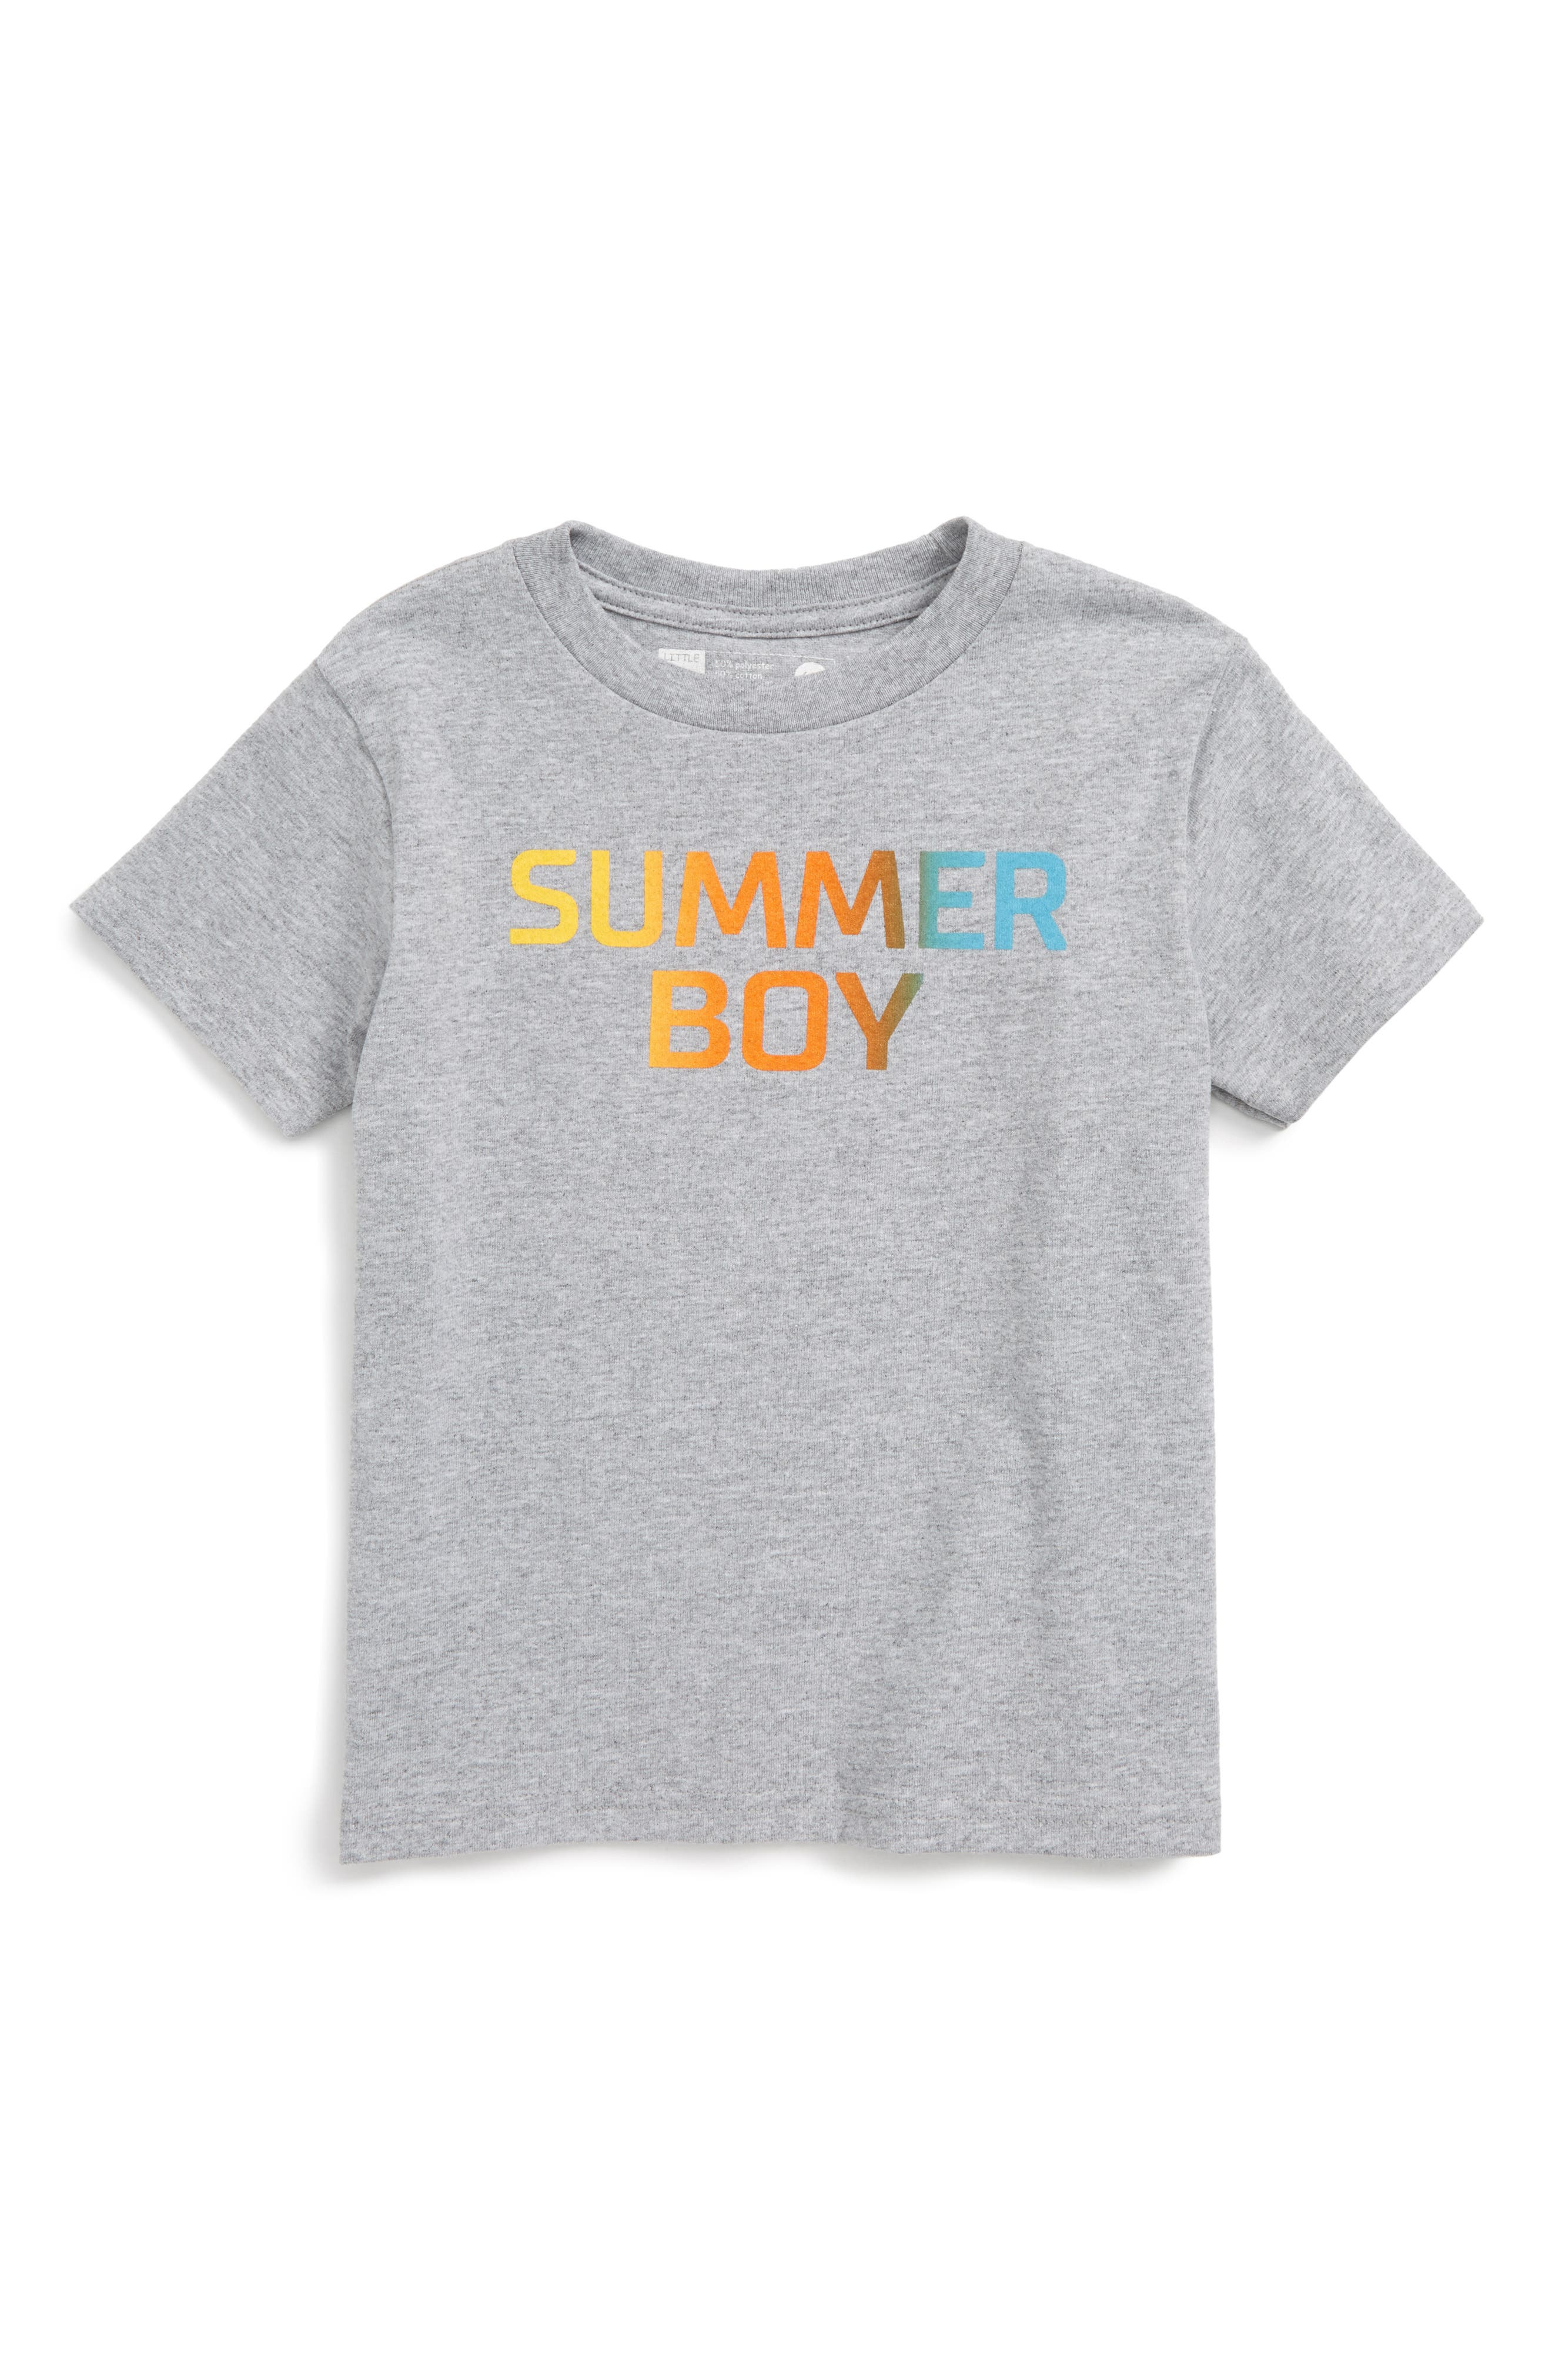 Main Image - DiLascia Summer Boy Graphic T-Shirt (Toddler Boys, Little Boys & Big Boys)